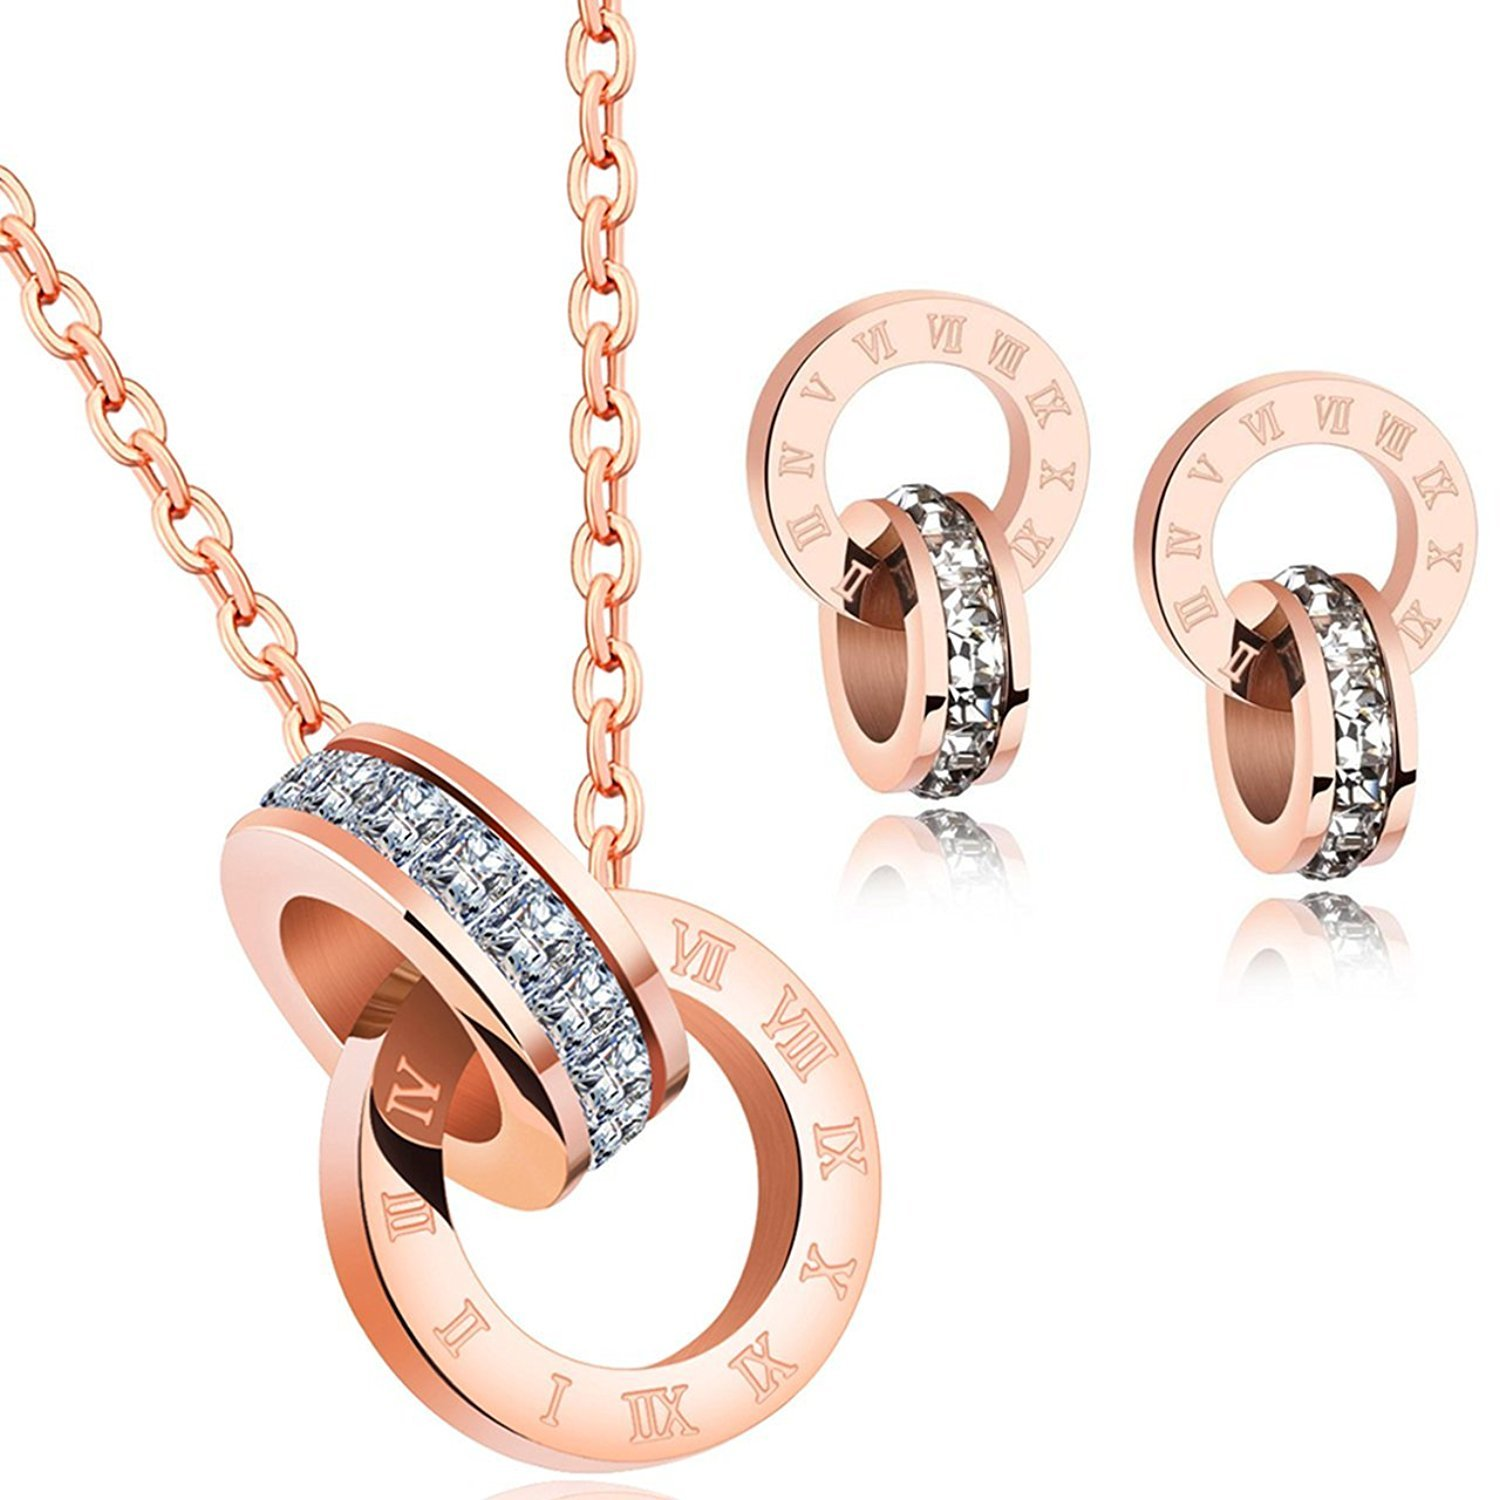 18k Rose Gold Pendant Necklace Crystal from Swarovski Stainless Steel Jewelry Gifts for Women showfay